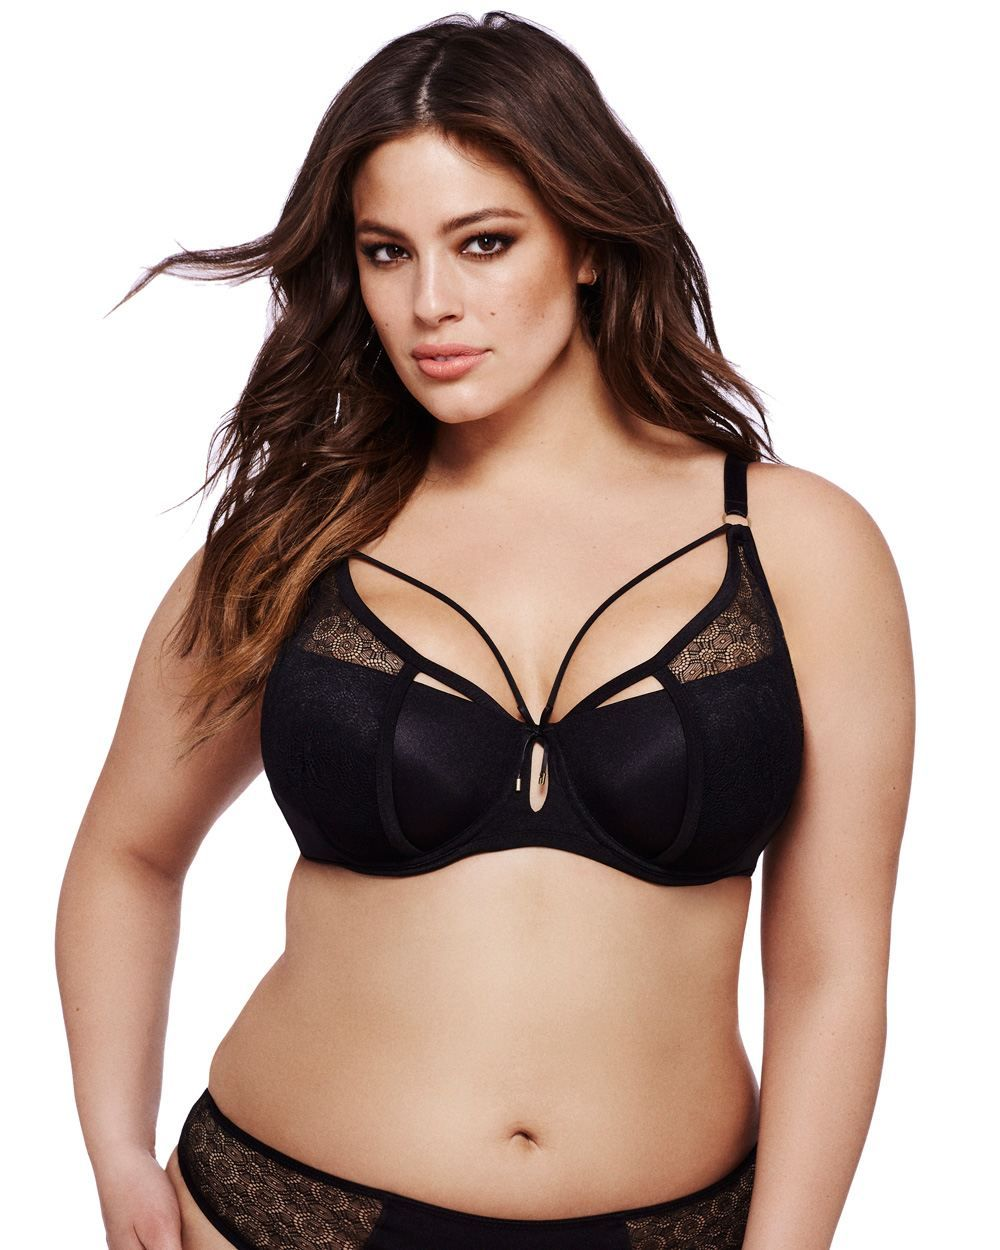 a5df834f7 Say yes to luxurious lingerie with this plus size bra from the Ashley Graham  collection